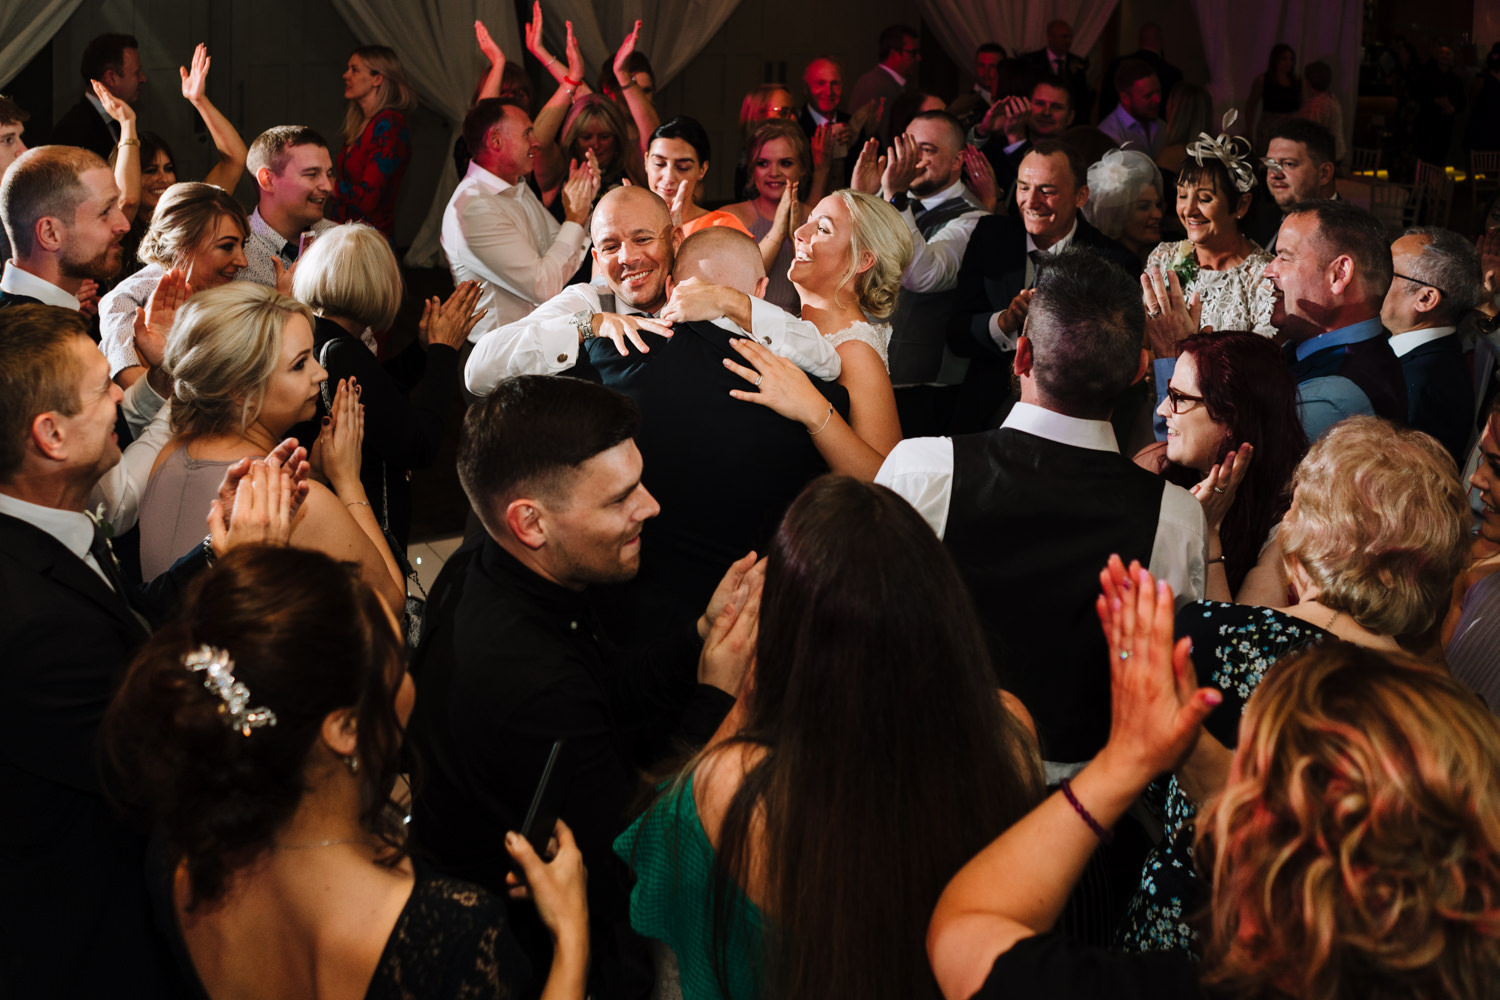 Packed dance floor at the Mere with bride and groom in middle